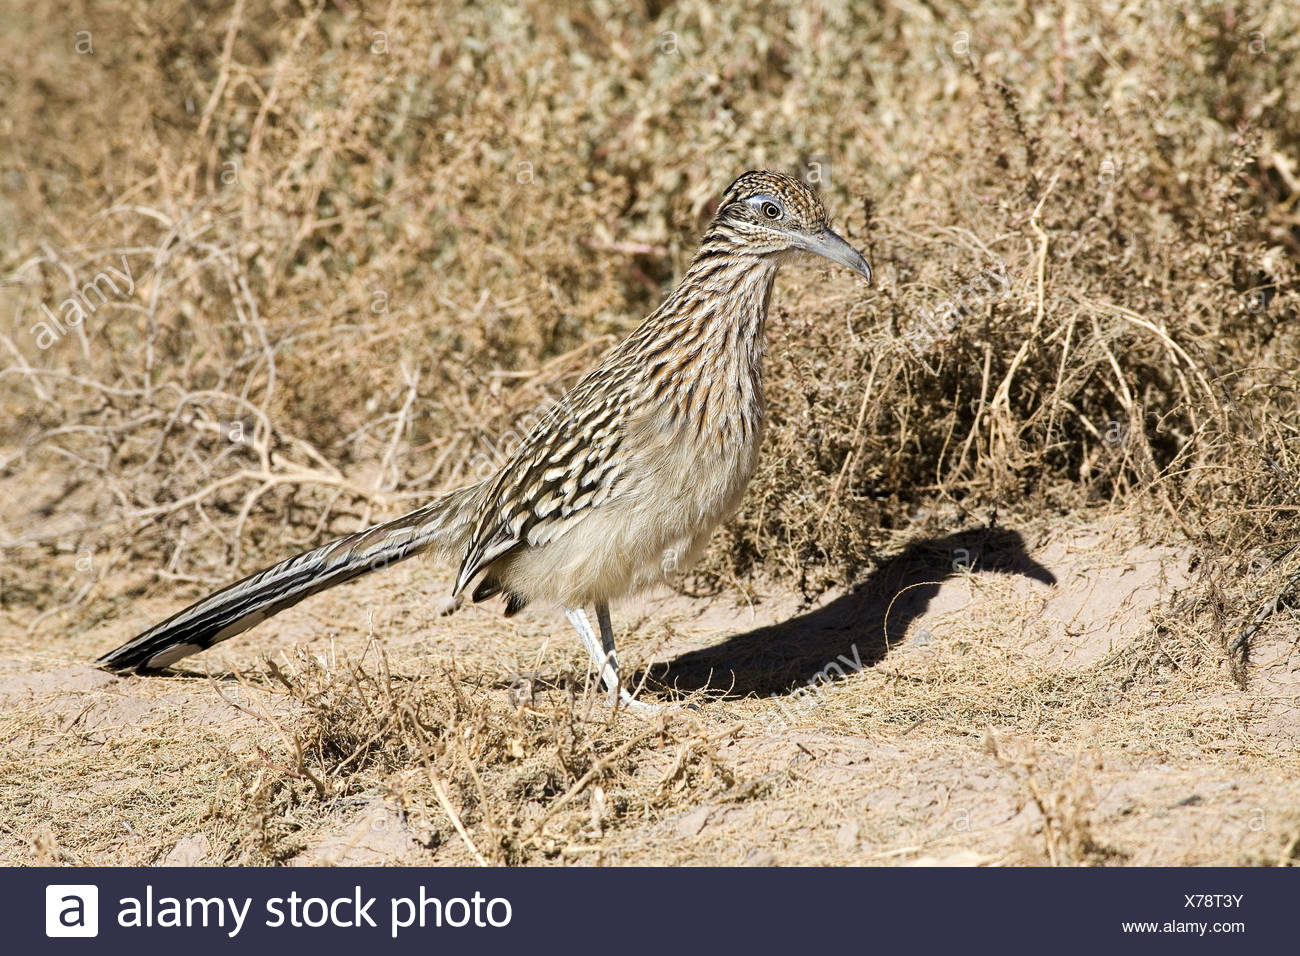 zoology / animals, avian / bird, Cuculidae, Greater Roadrunner (Geococcyx californianus), Bosque del Apache, Wildlife Refuge, New Mexico, USA, distribution: southwest of USA and northern Mexico, Additional-Rights-Clearance-Info-Not-Available - Stock Image